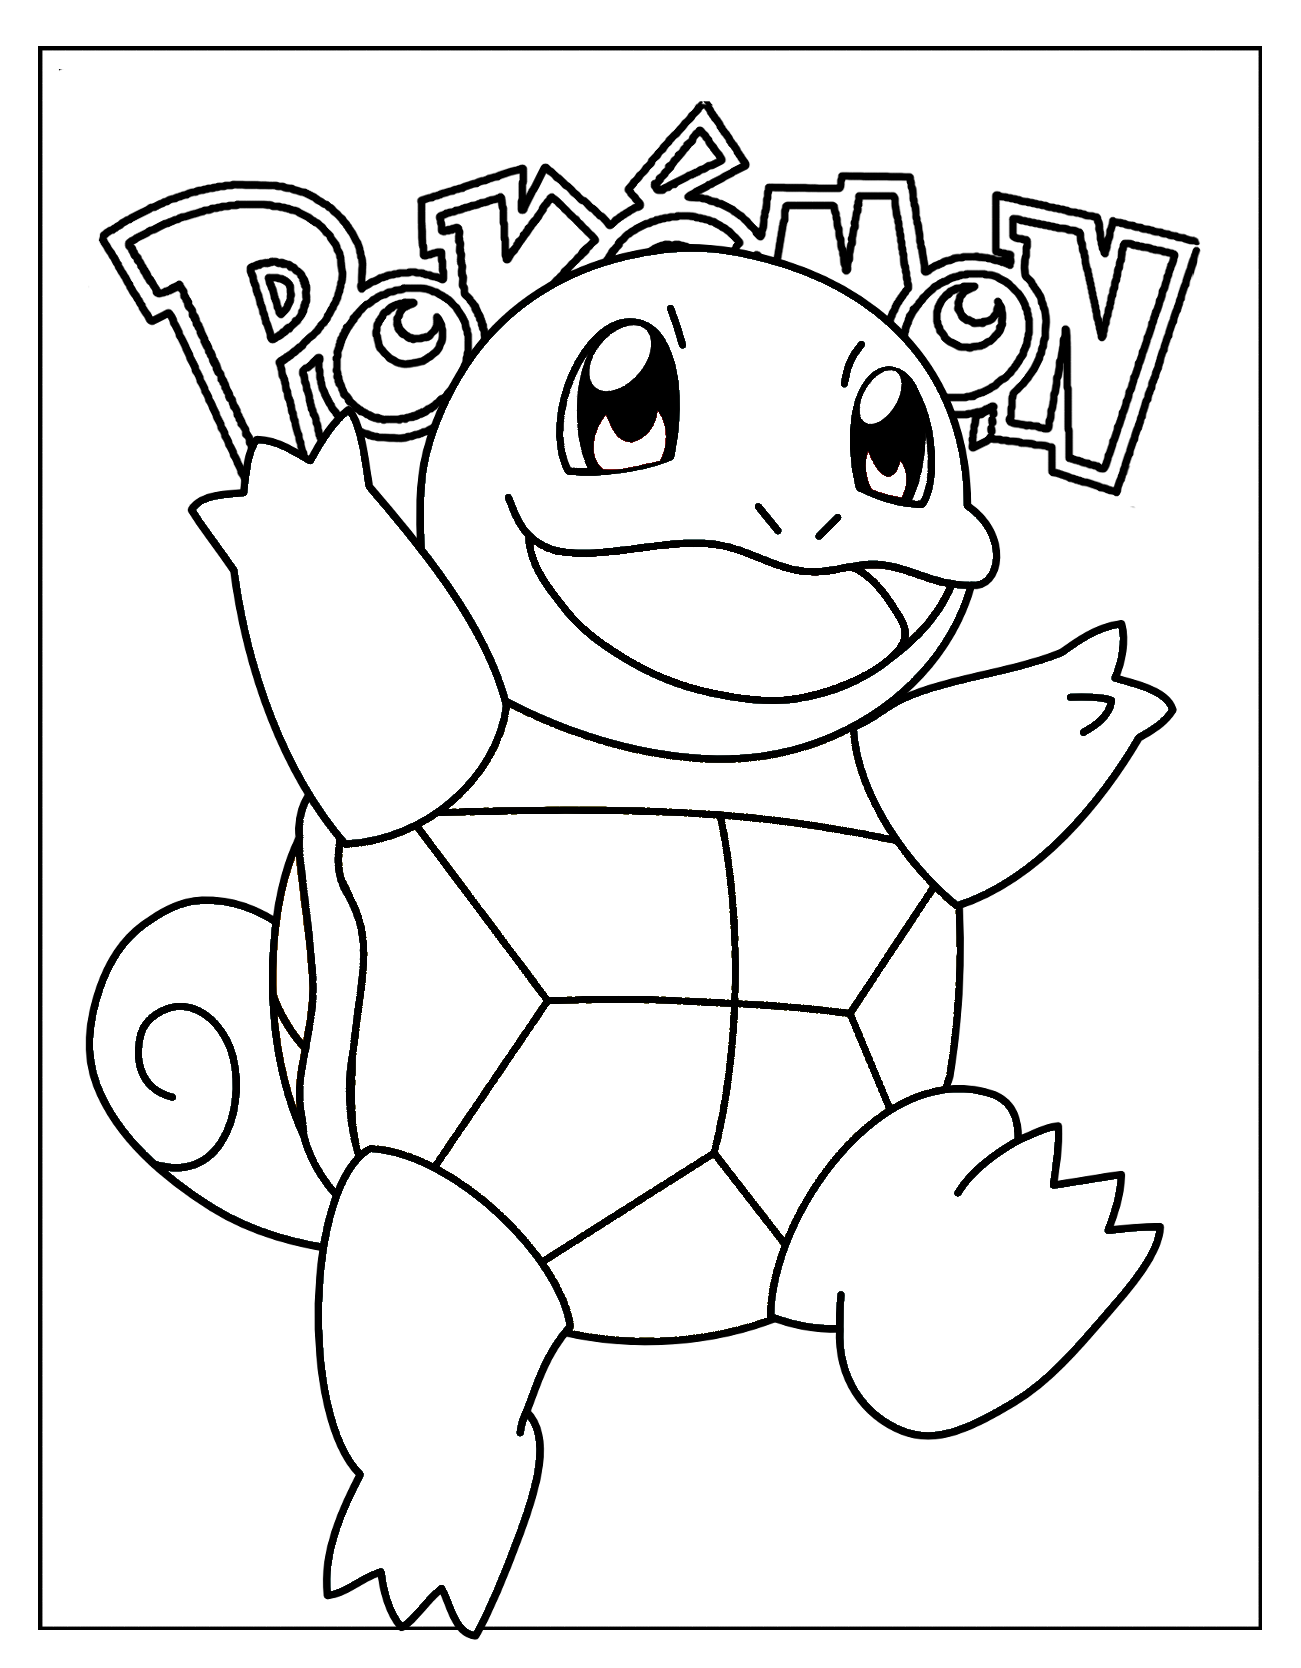 squirtle coloring sheet | coloring pages | Pinterest